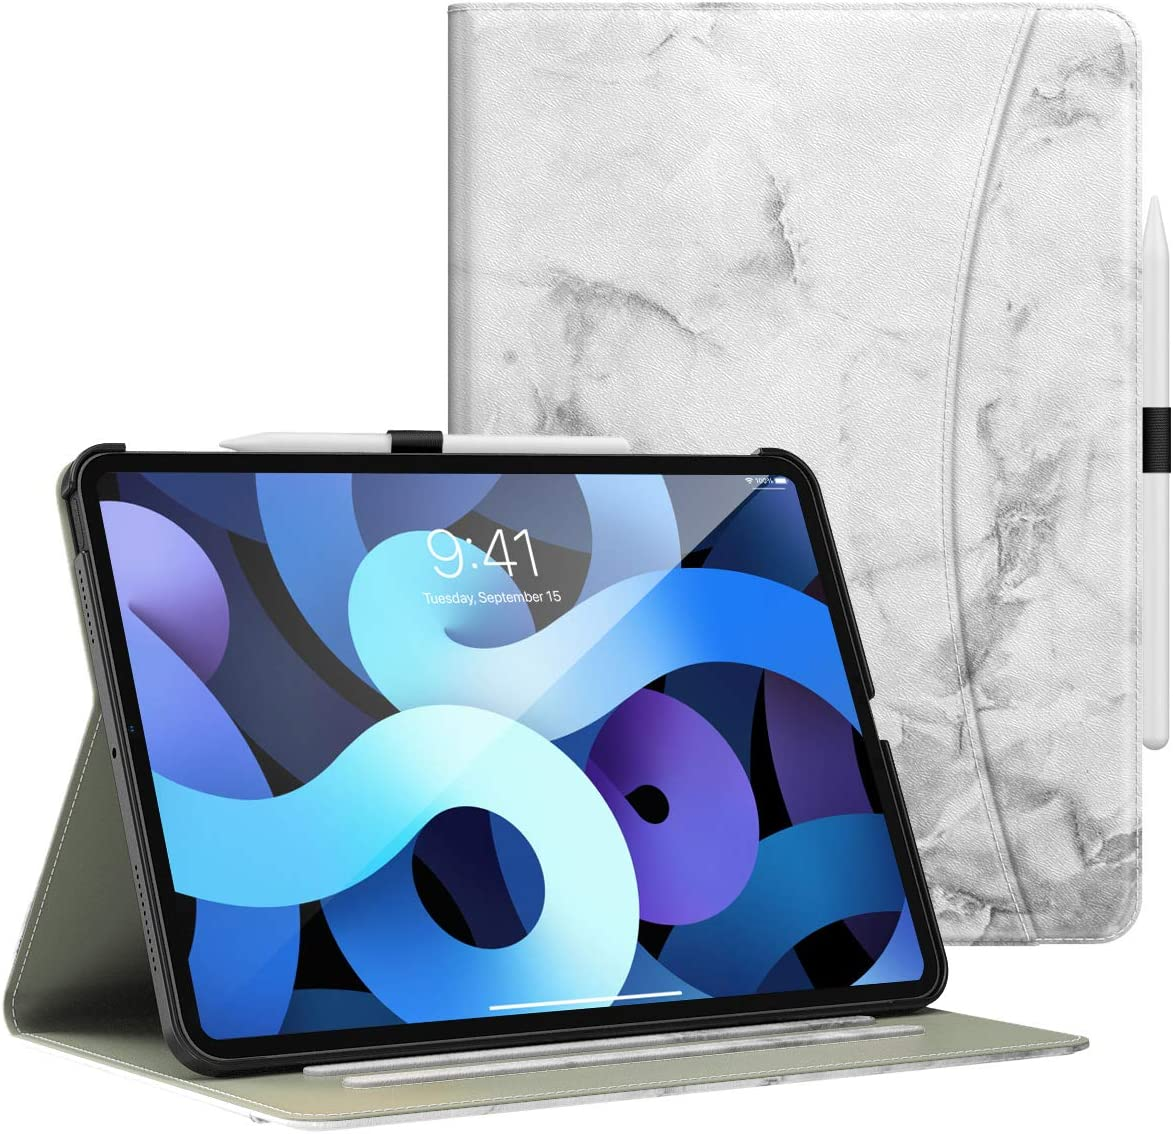 Dadanism Case Fit iPad Air 4th Generation Case 2020 10.9 inch Case, [Multi-Angle Viewing Stand] Lightweight Shockproof Protective Cover with Flexible Hand Strap & Card Slots, Marble White